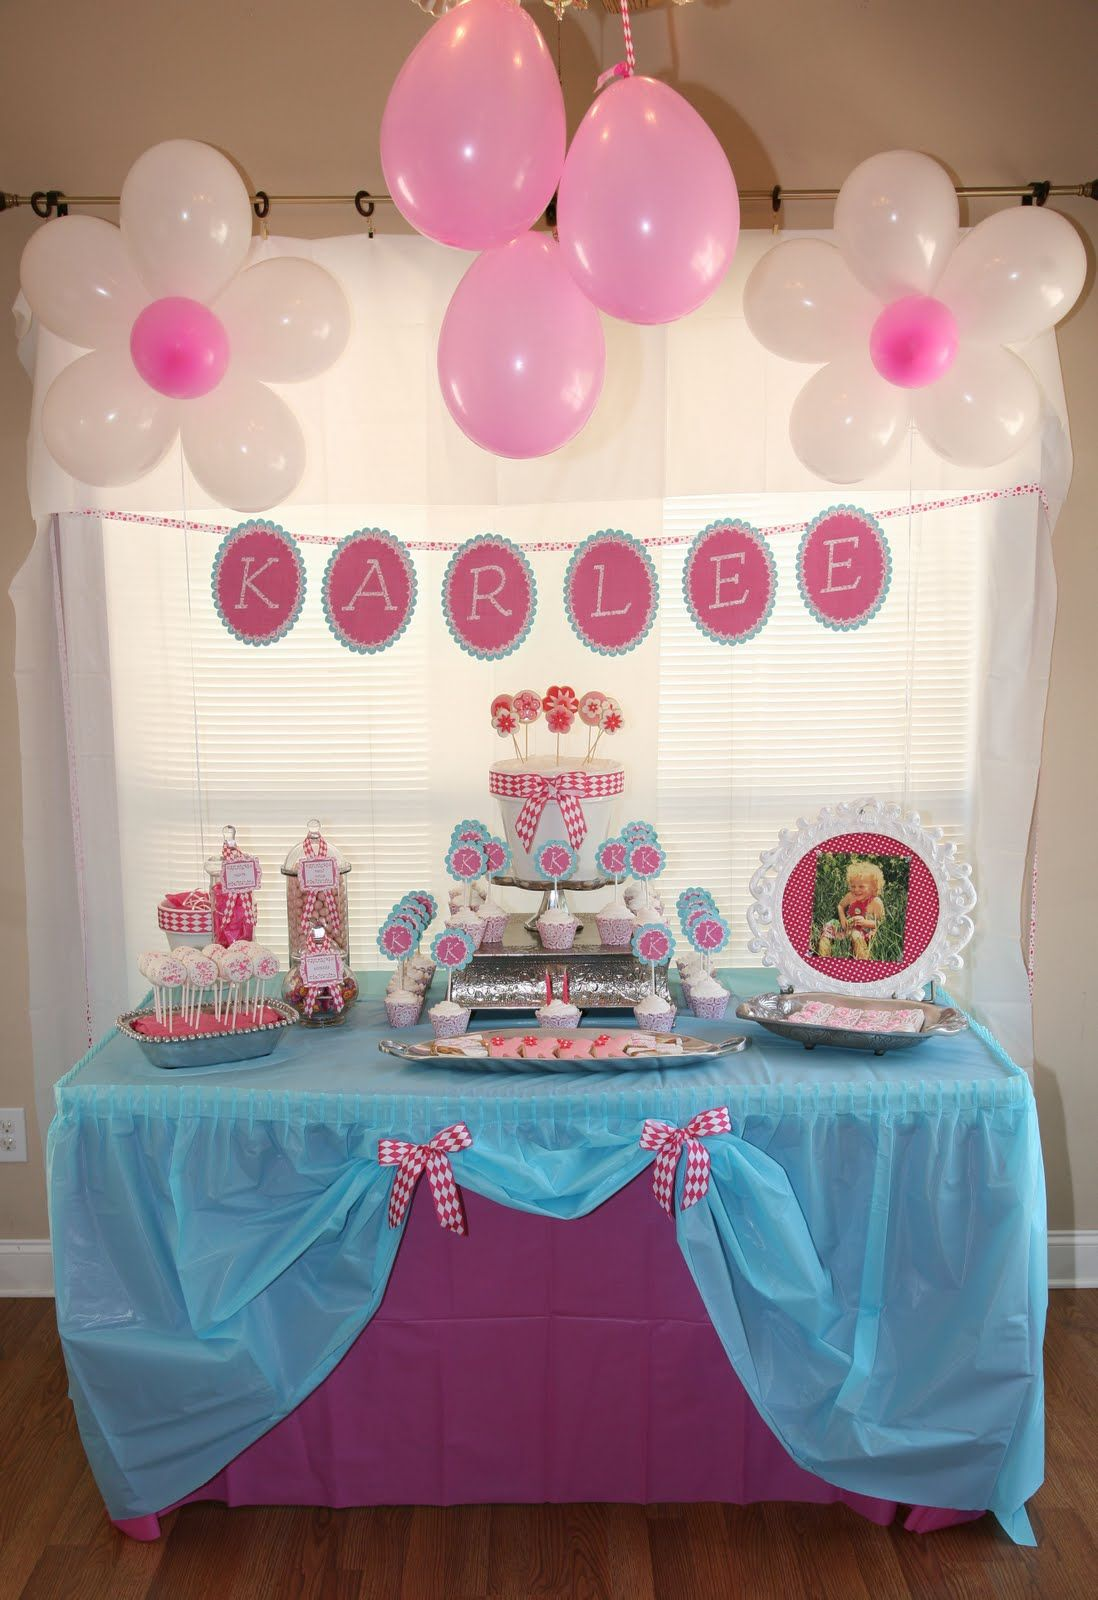 Homemade Princess Party Decorations Baby Shower By Inches Of Ribbon Love The Billiards Theme Also Rh